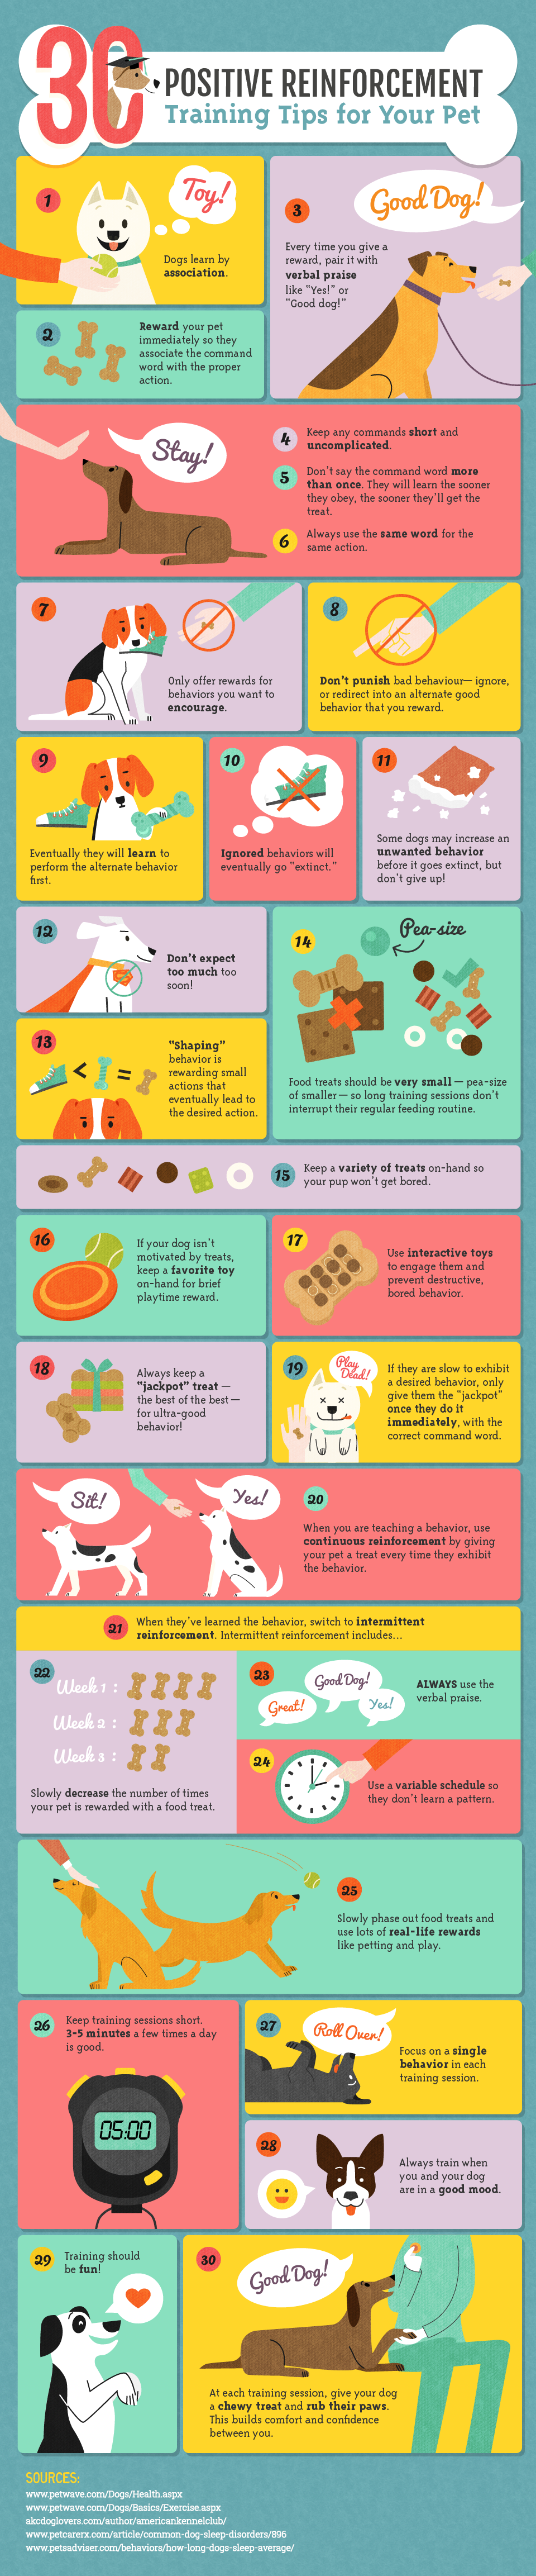 FitBark_PositiveTraining_infographic_treats_praise | Treats and Praise: Using Positive Training Techniques